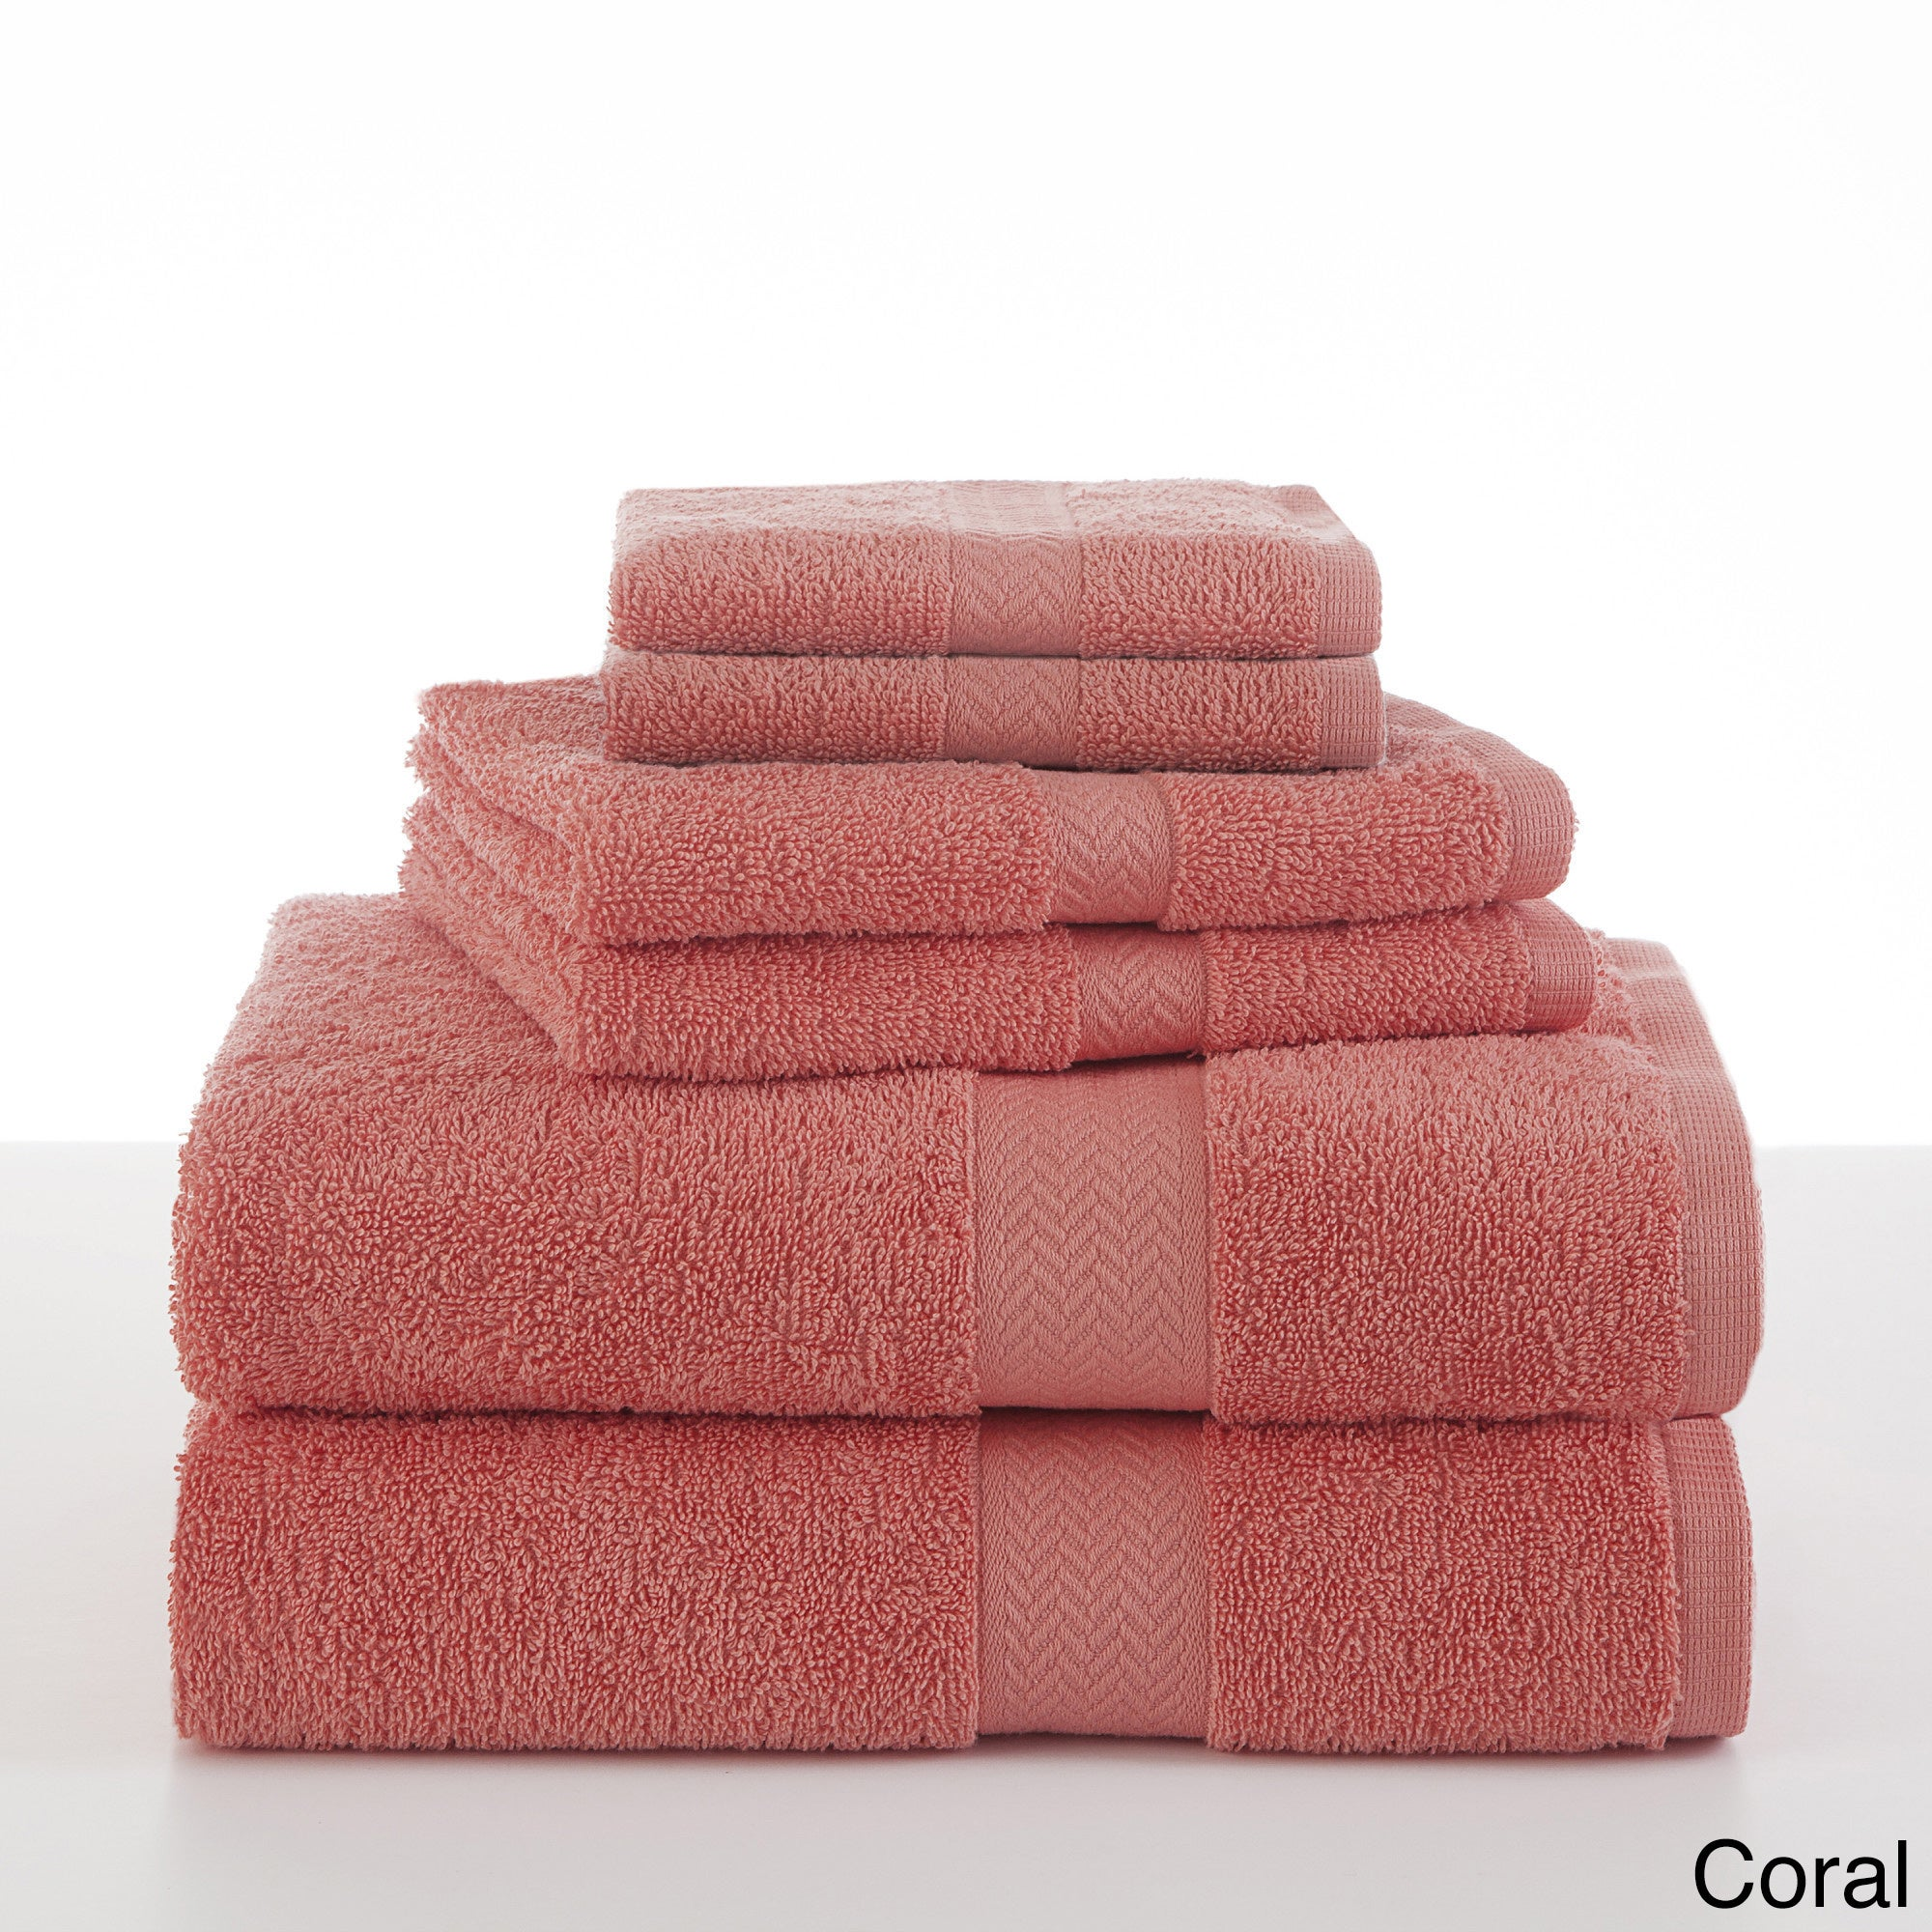 MARTEX Ringspun 6-Piece Towel Set (Coral), Pink (Cotton, ...